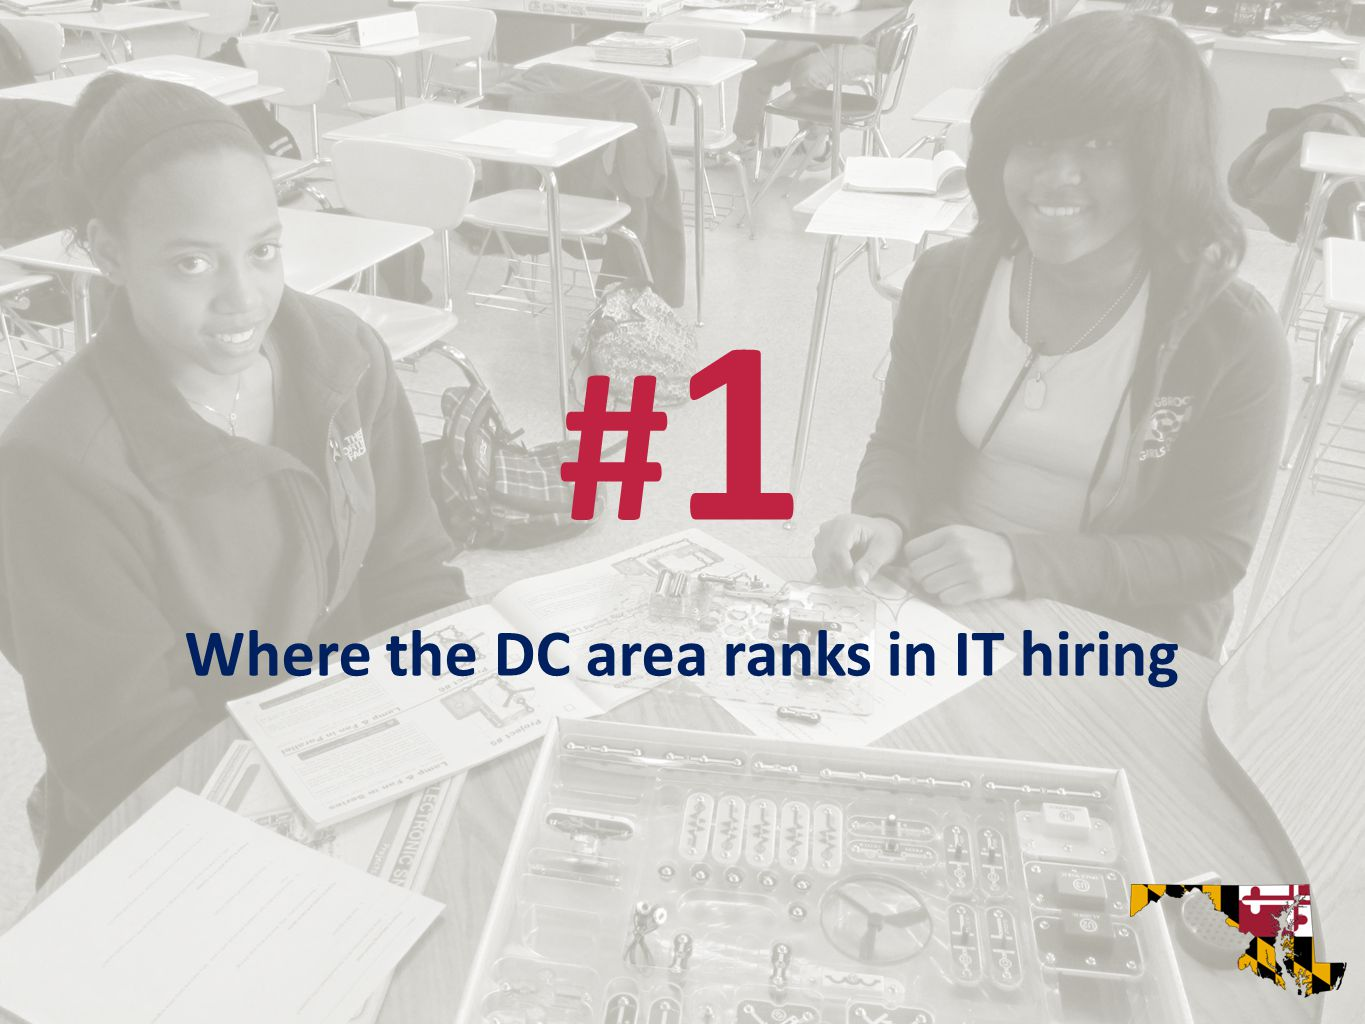 #1#1 Where the DC area ranks in IT hiring